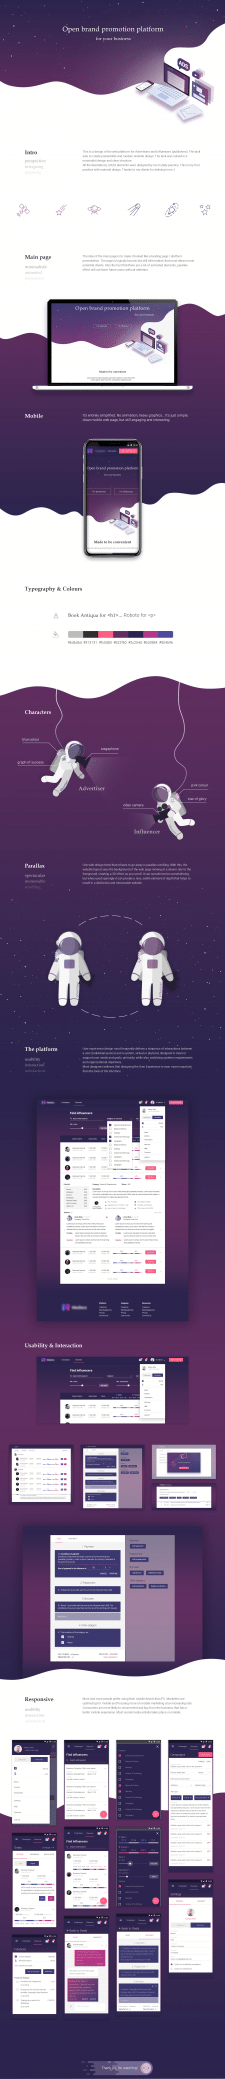 Design, UI/UX of web platform